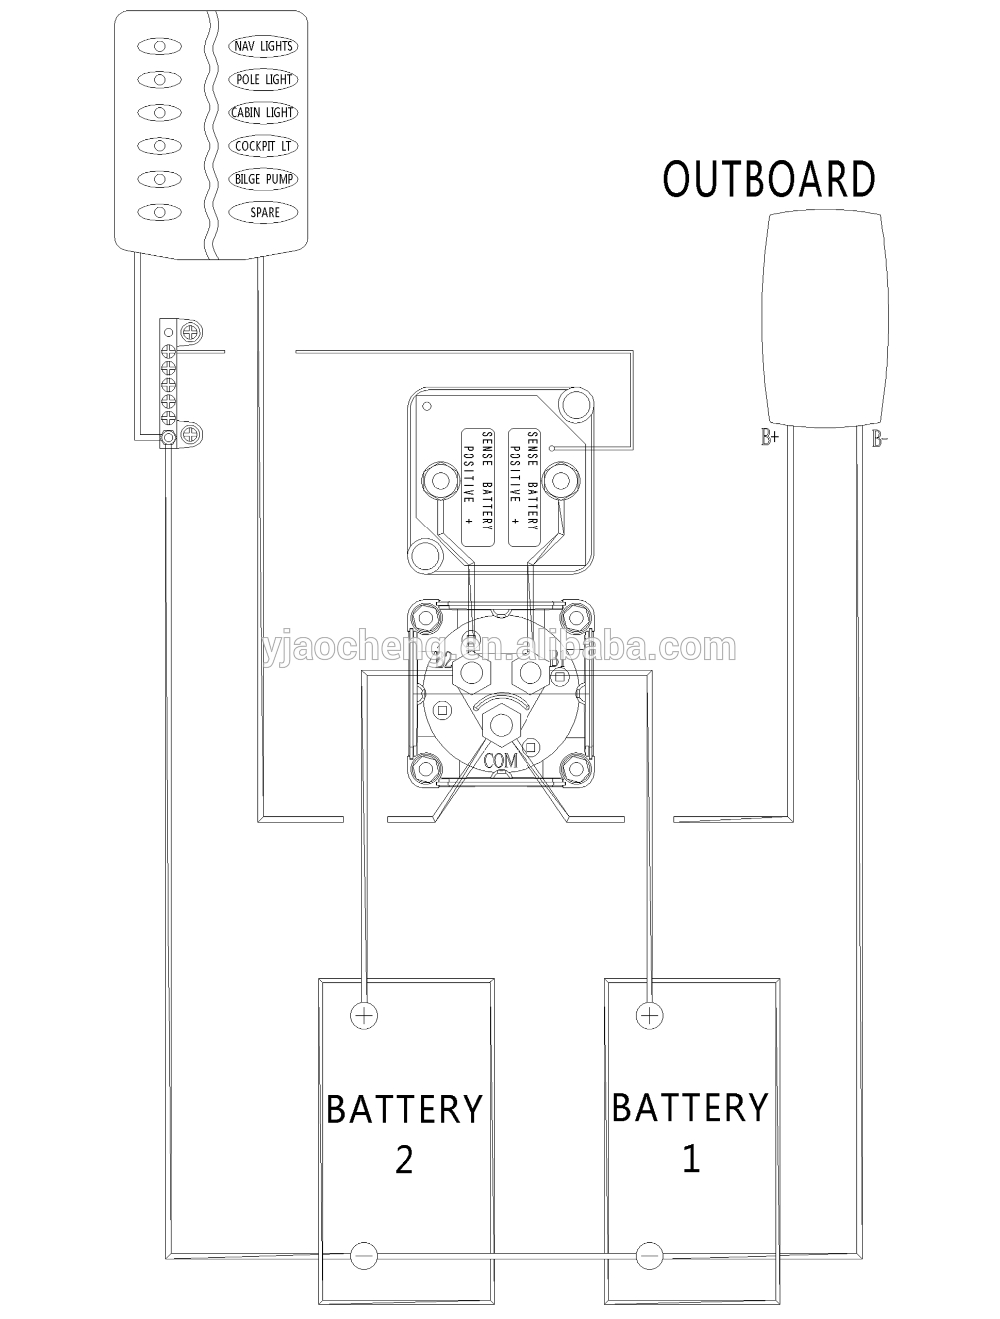 Switch Wiring Diagram As Well Perko Dual Battery Switch Wiring Diagram